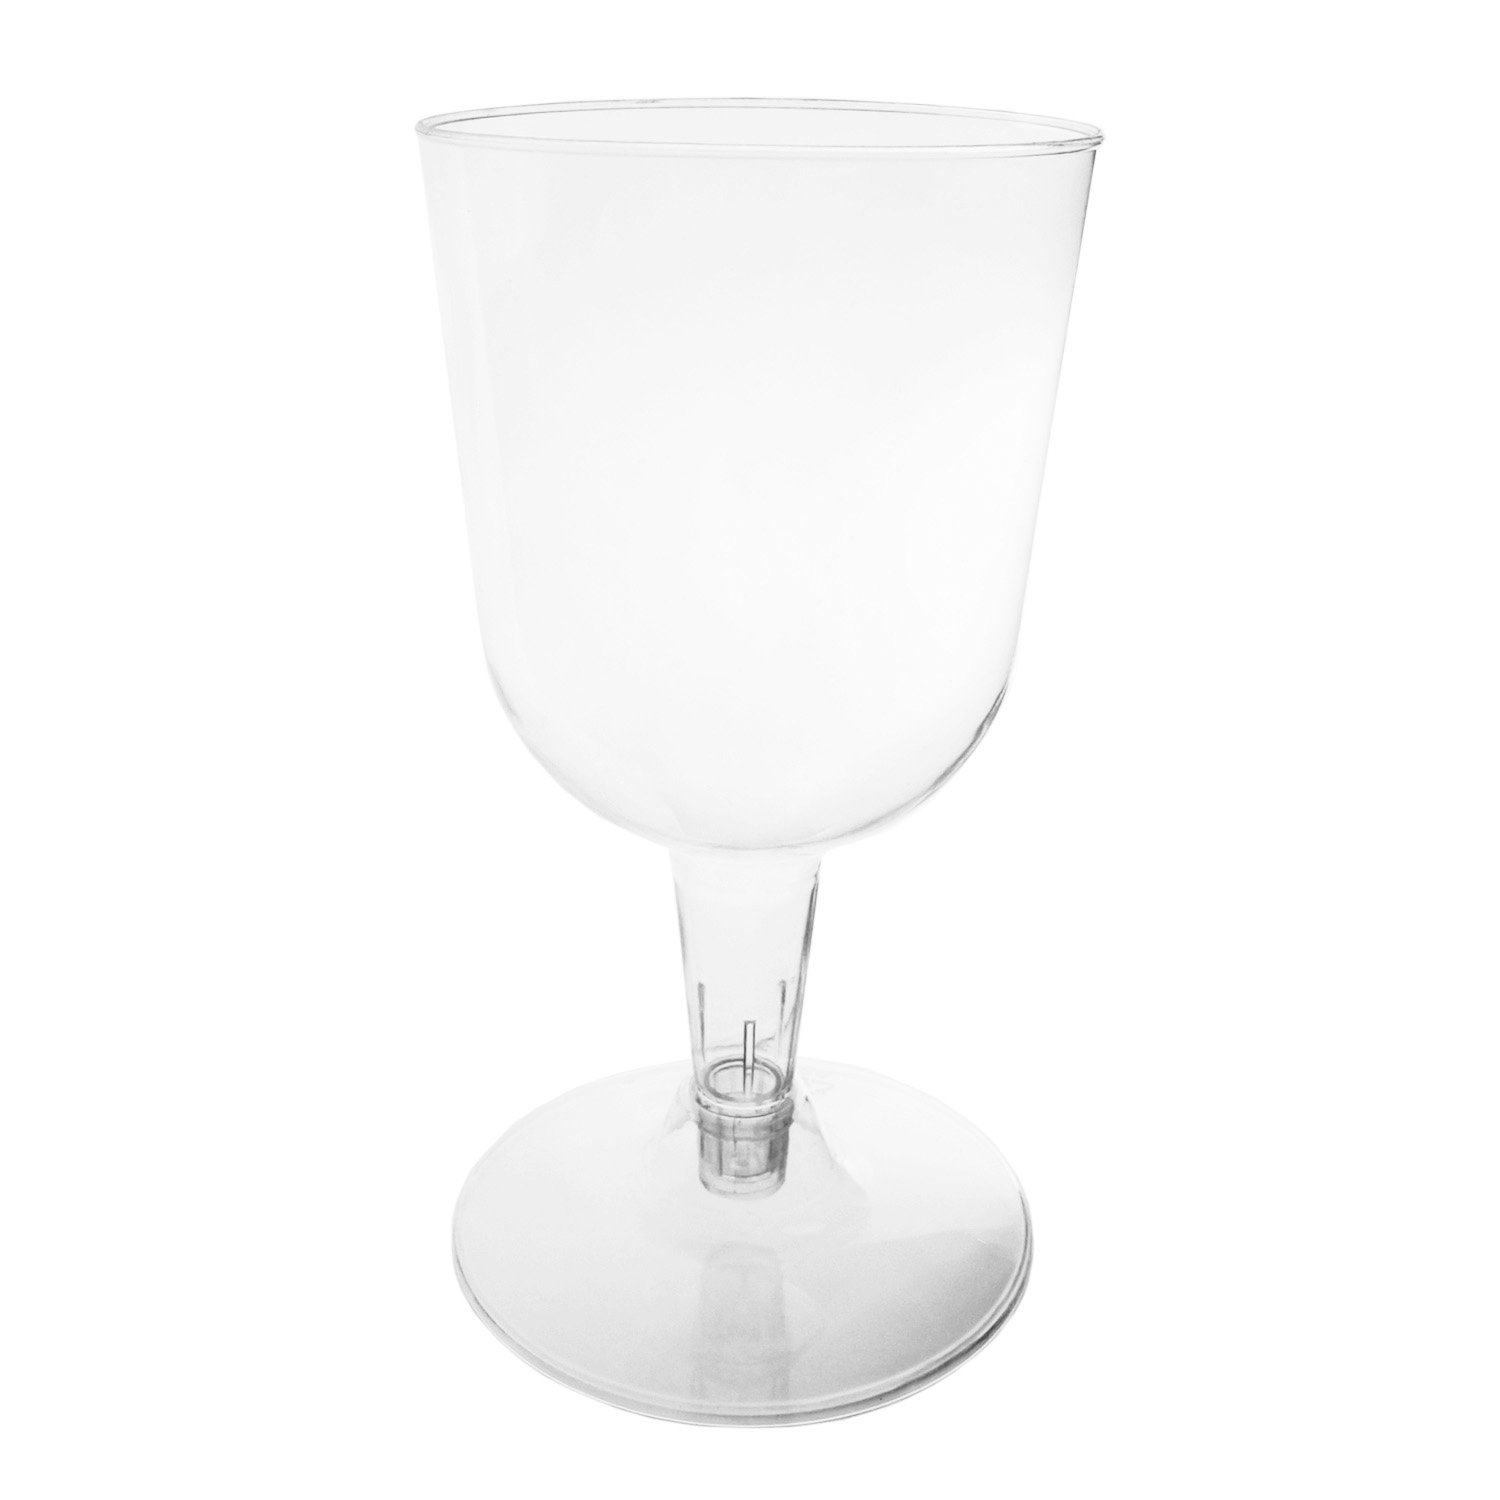 Clear Case of 96 Party Essentials NW115500-24//4 Hard Plastic 2-Piece Wine Glass 5.5-Ounce Capacity